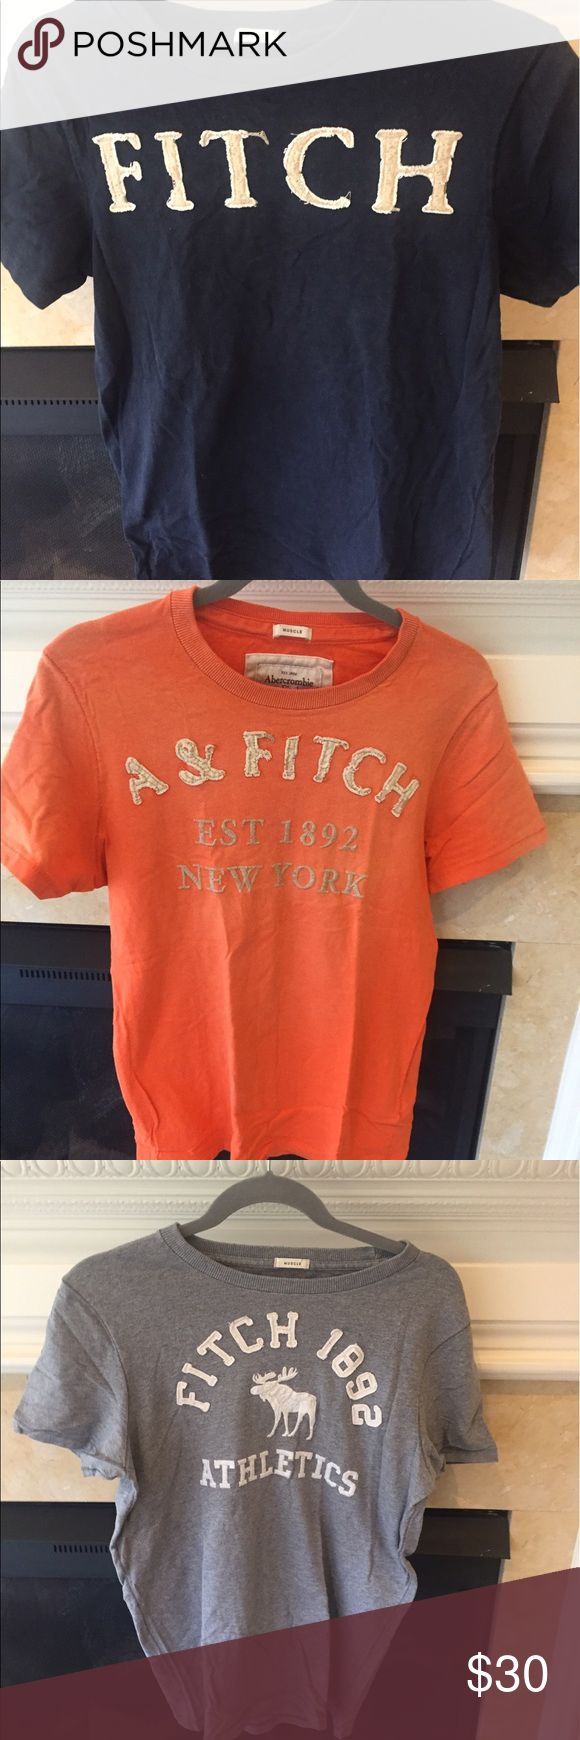 Lot of 3 Abercrombie and Fitch T shirts size M 3 T Shirts barely worn. All in perfect condition. The orange one has lite and dark orange and it's suppose to be like that. Size medium/teen or young adult Abercrombie & Fitch Shirts & Tops Tees - Short Sleeve